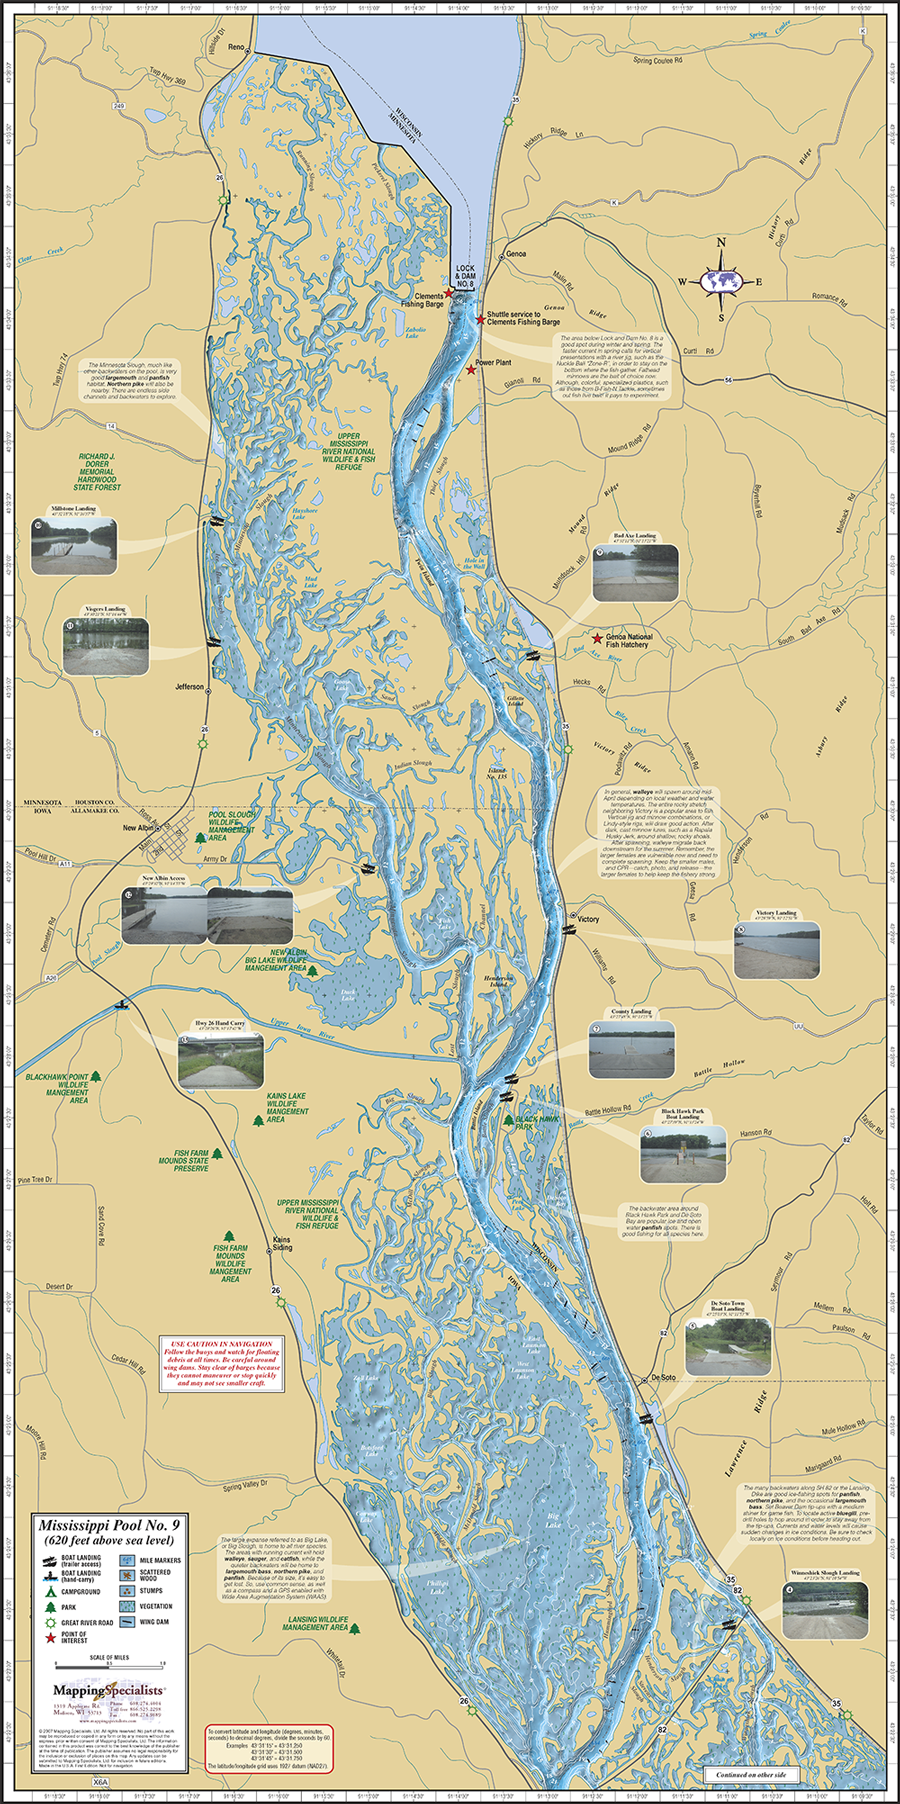 Mississippi River Pool Fold Map - Mississippi maps